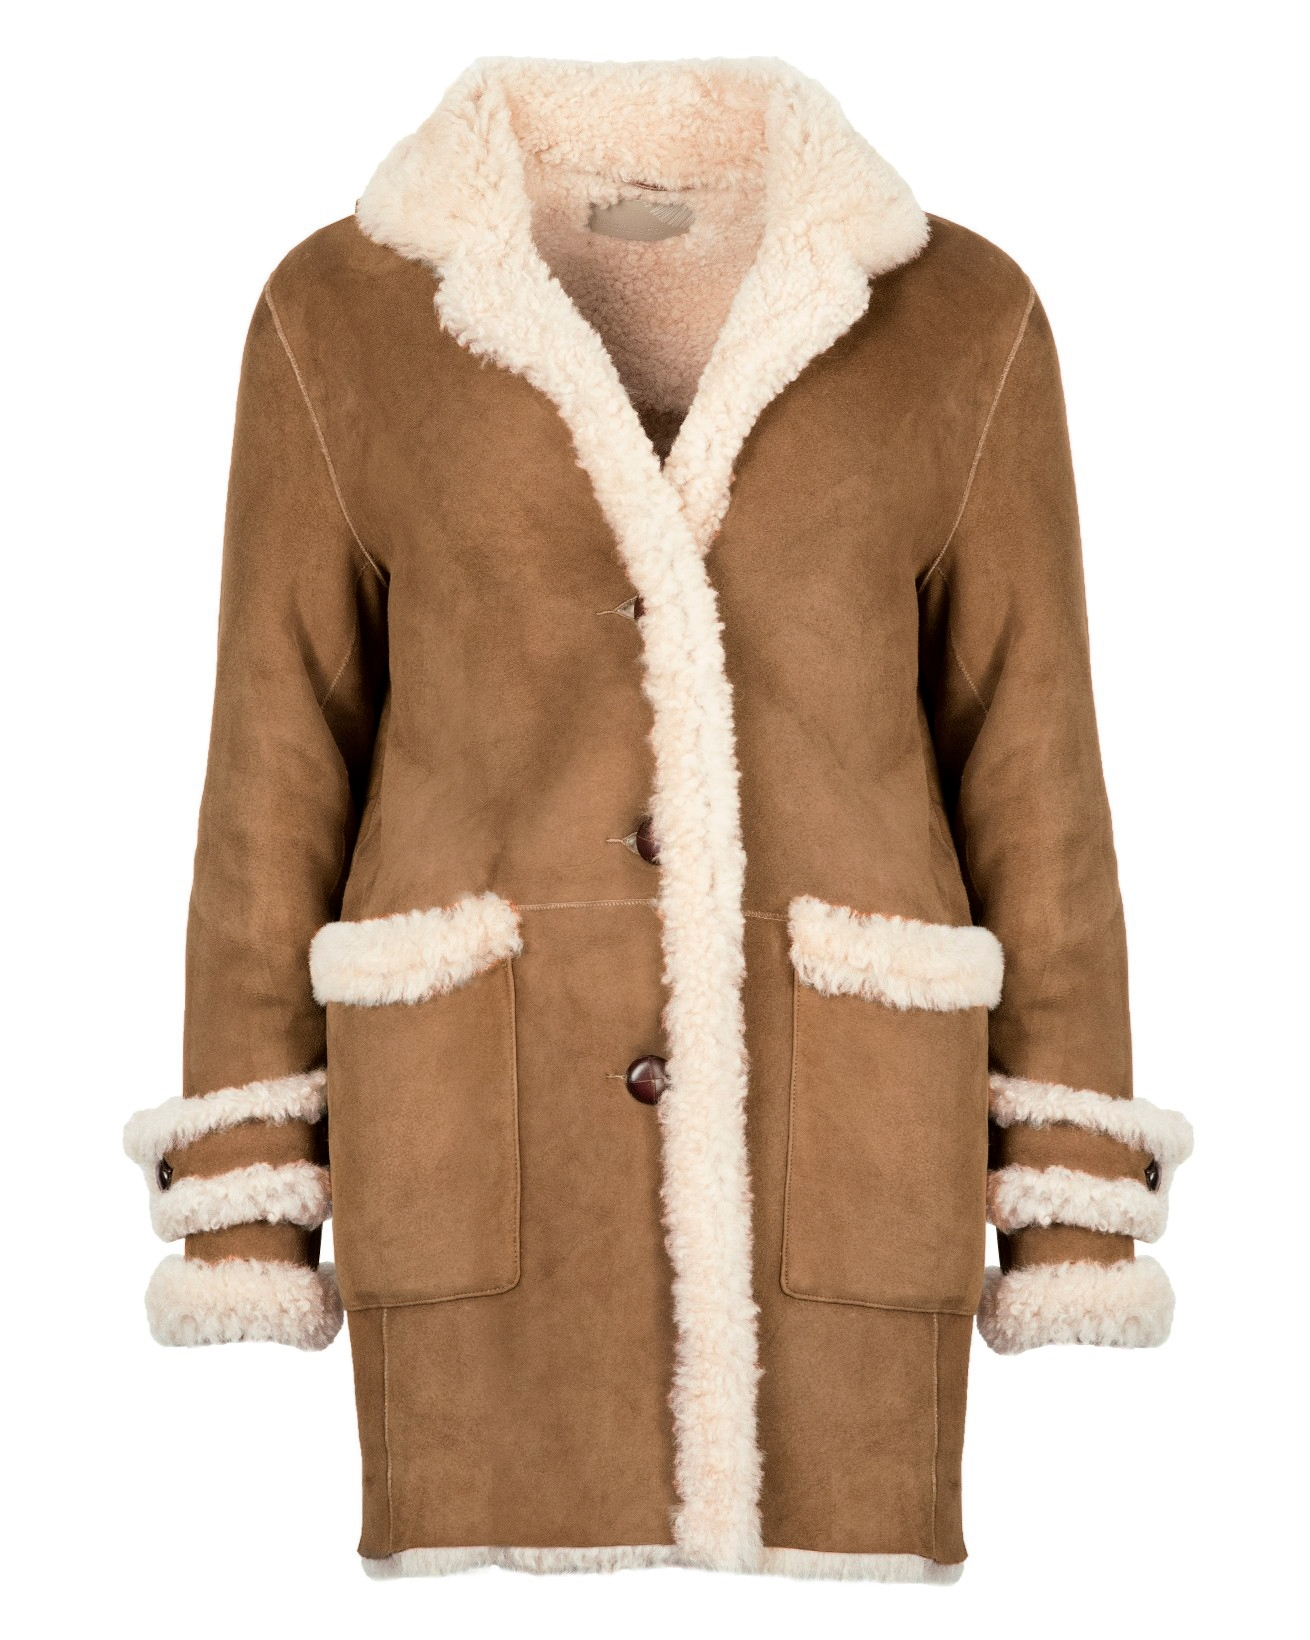 7408_vintage box sheepskin coat_front_aw17.jpg